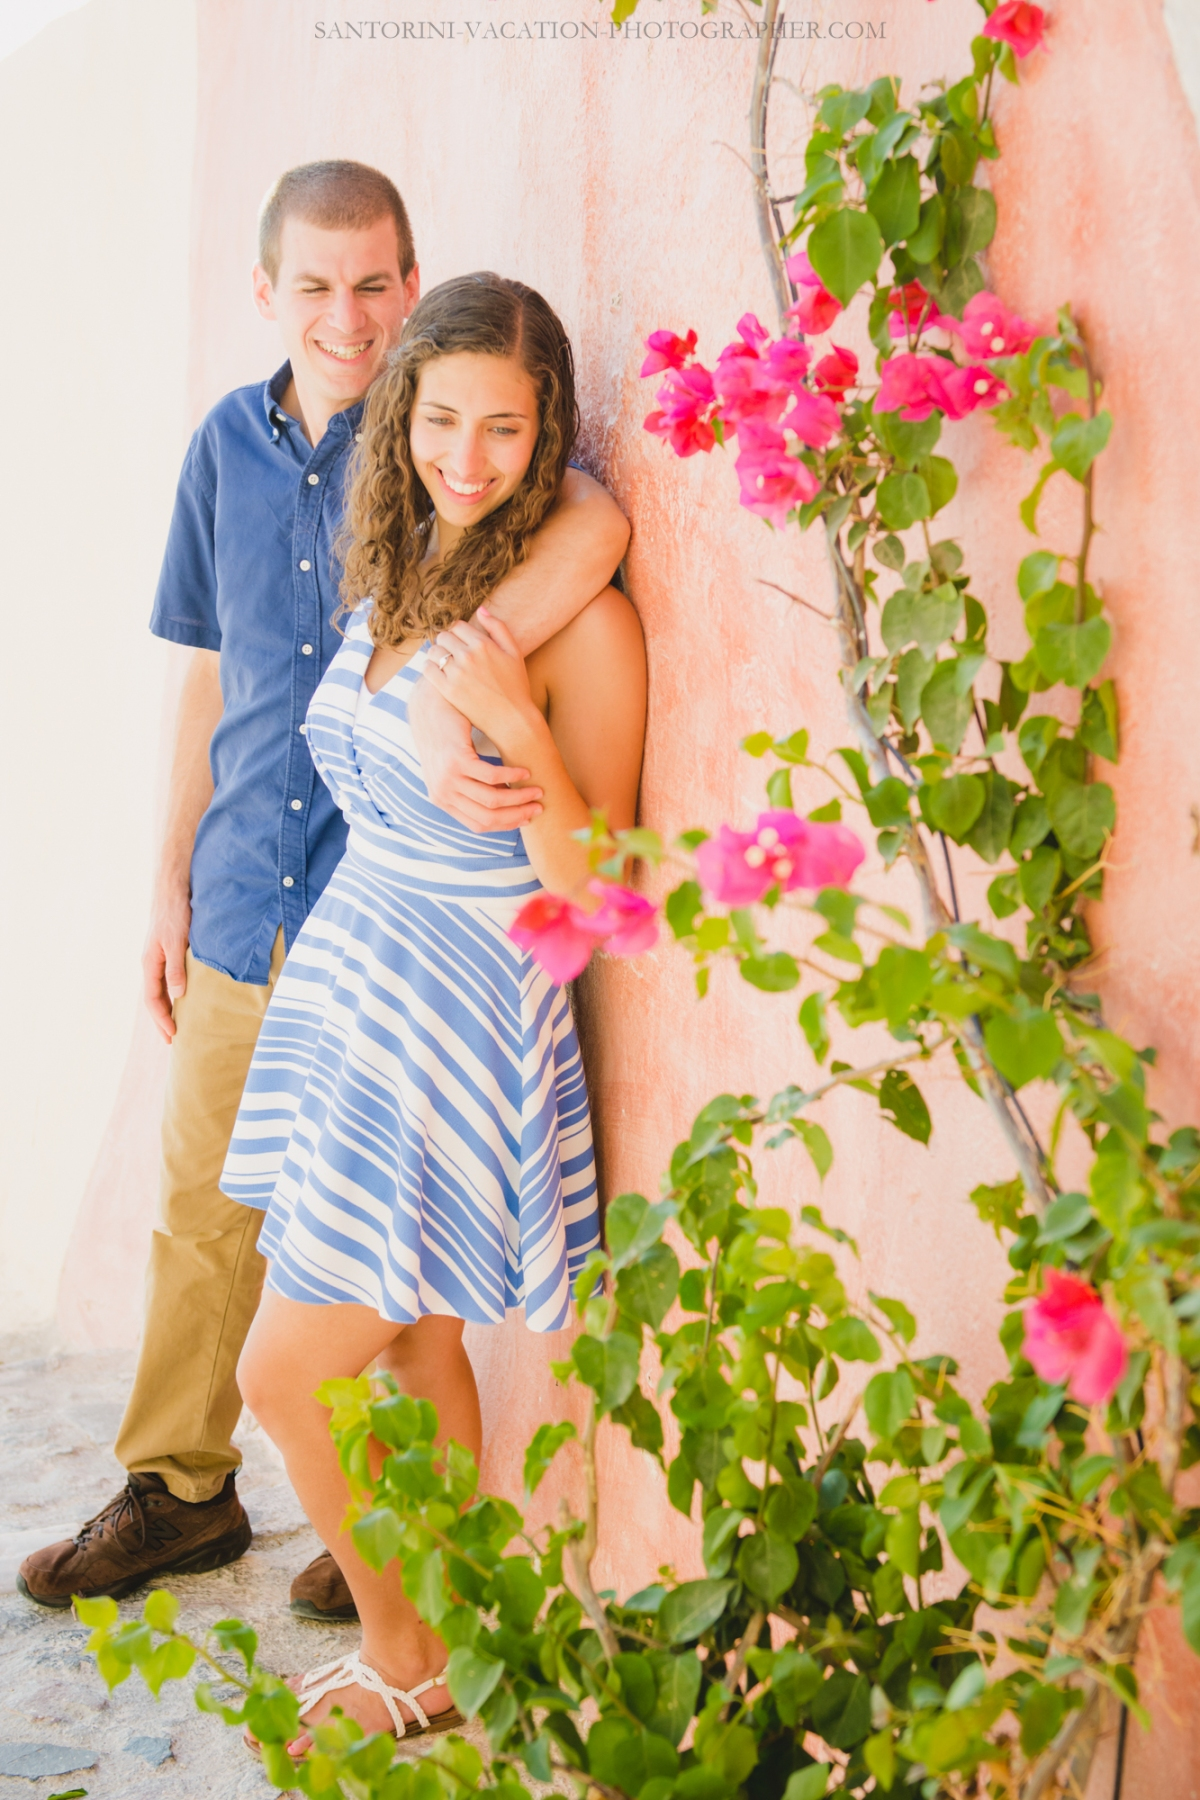 Santorini-proposal-couples-photo-shoot-Greece-003